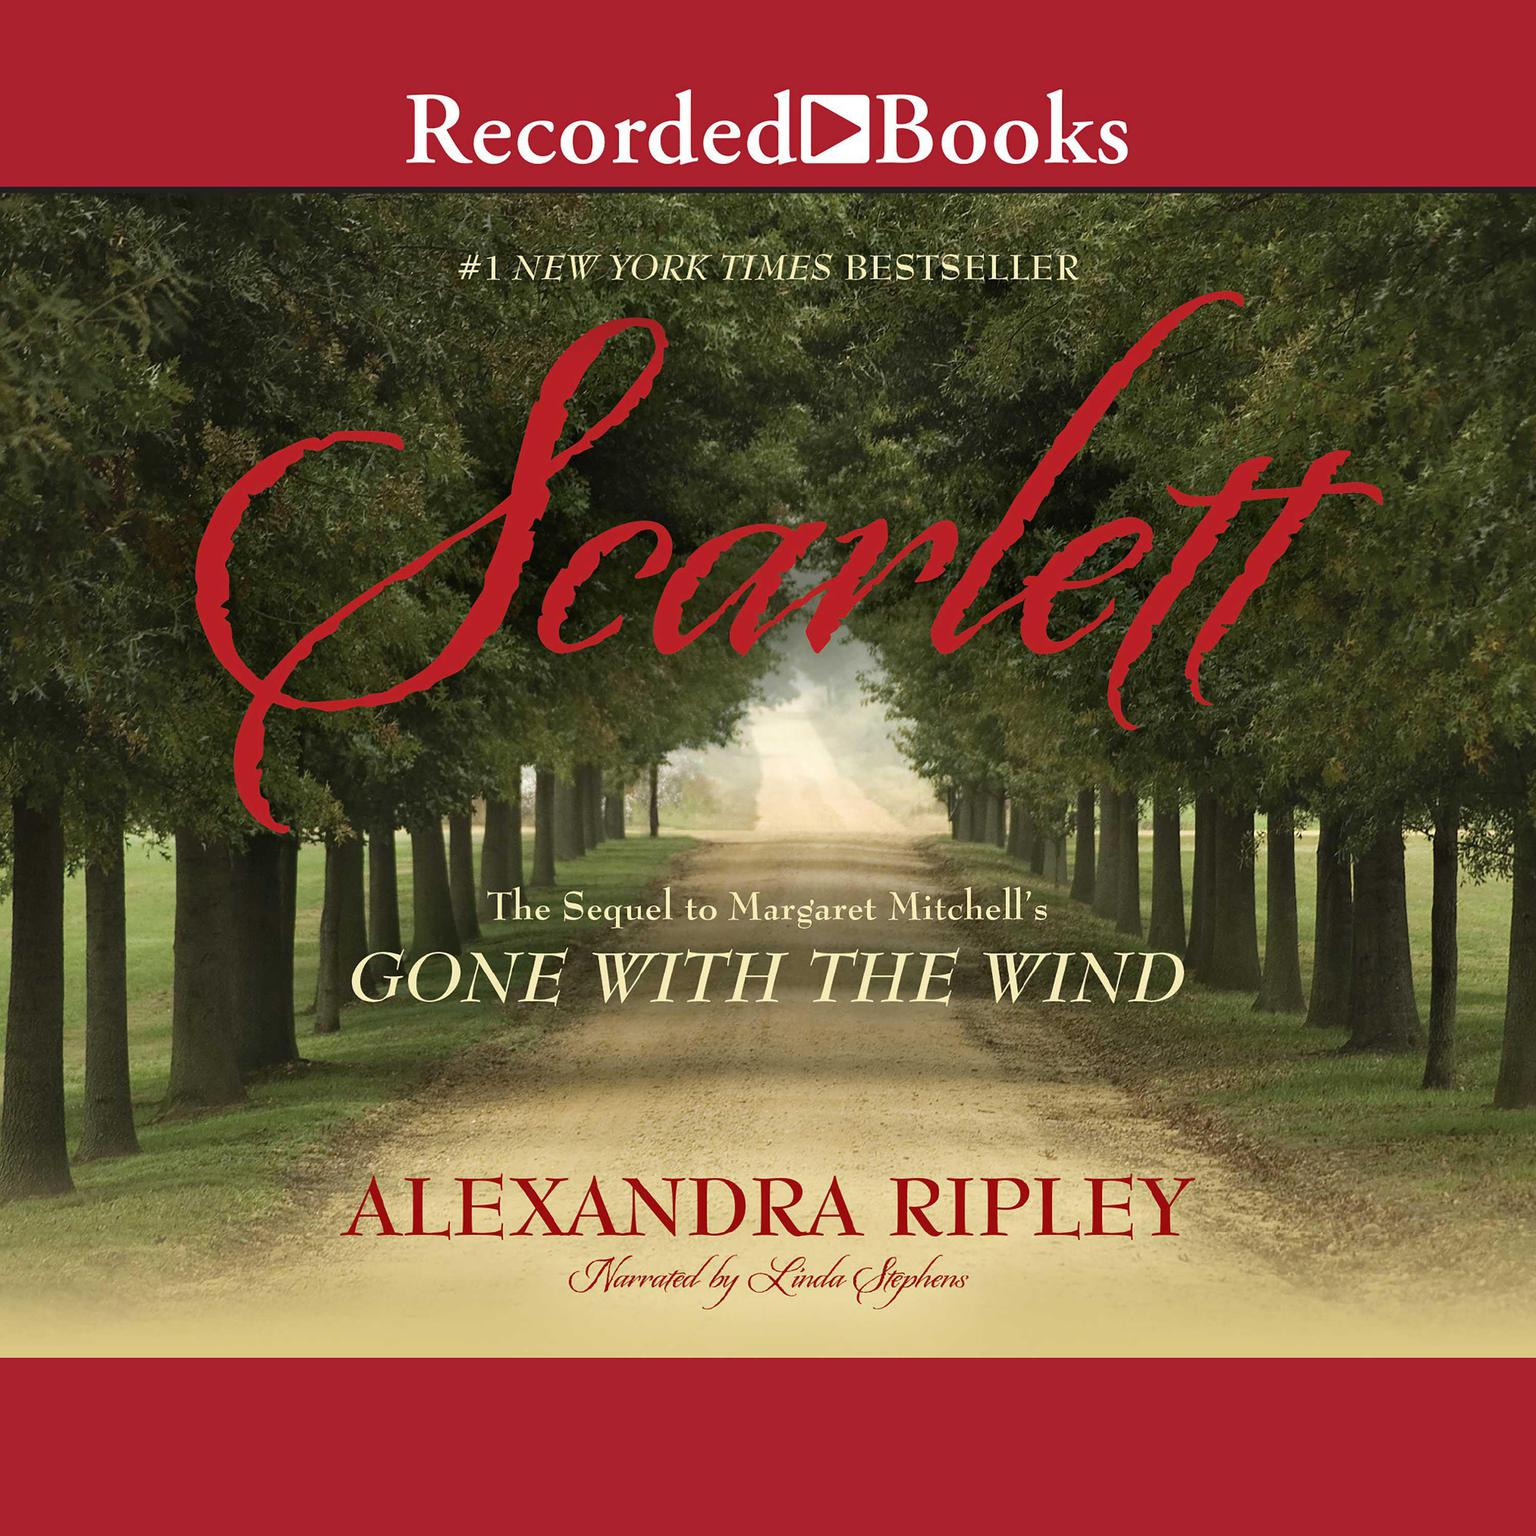 Printable Scarlett: The Sequel to Margaret Mitchell's 'Gone With the Wind' Audiobook Cover Art